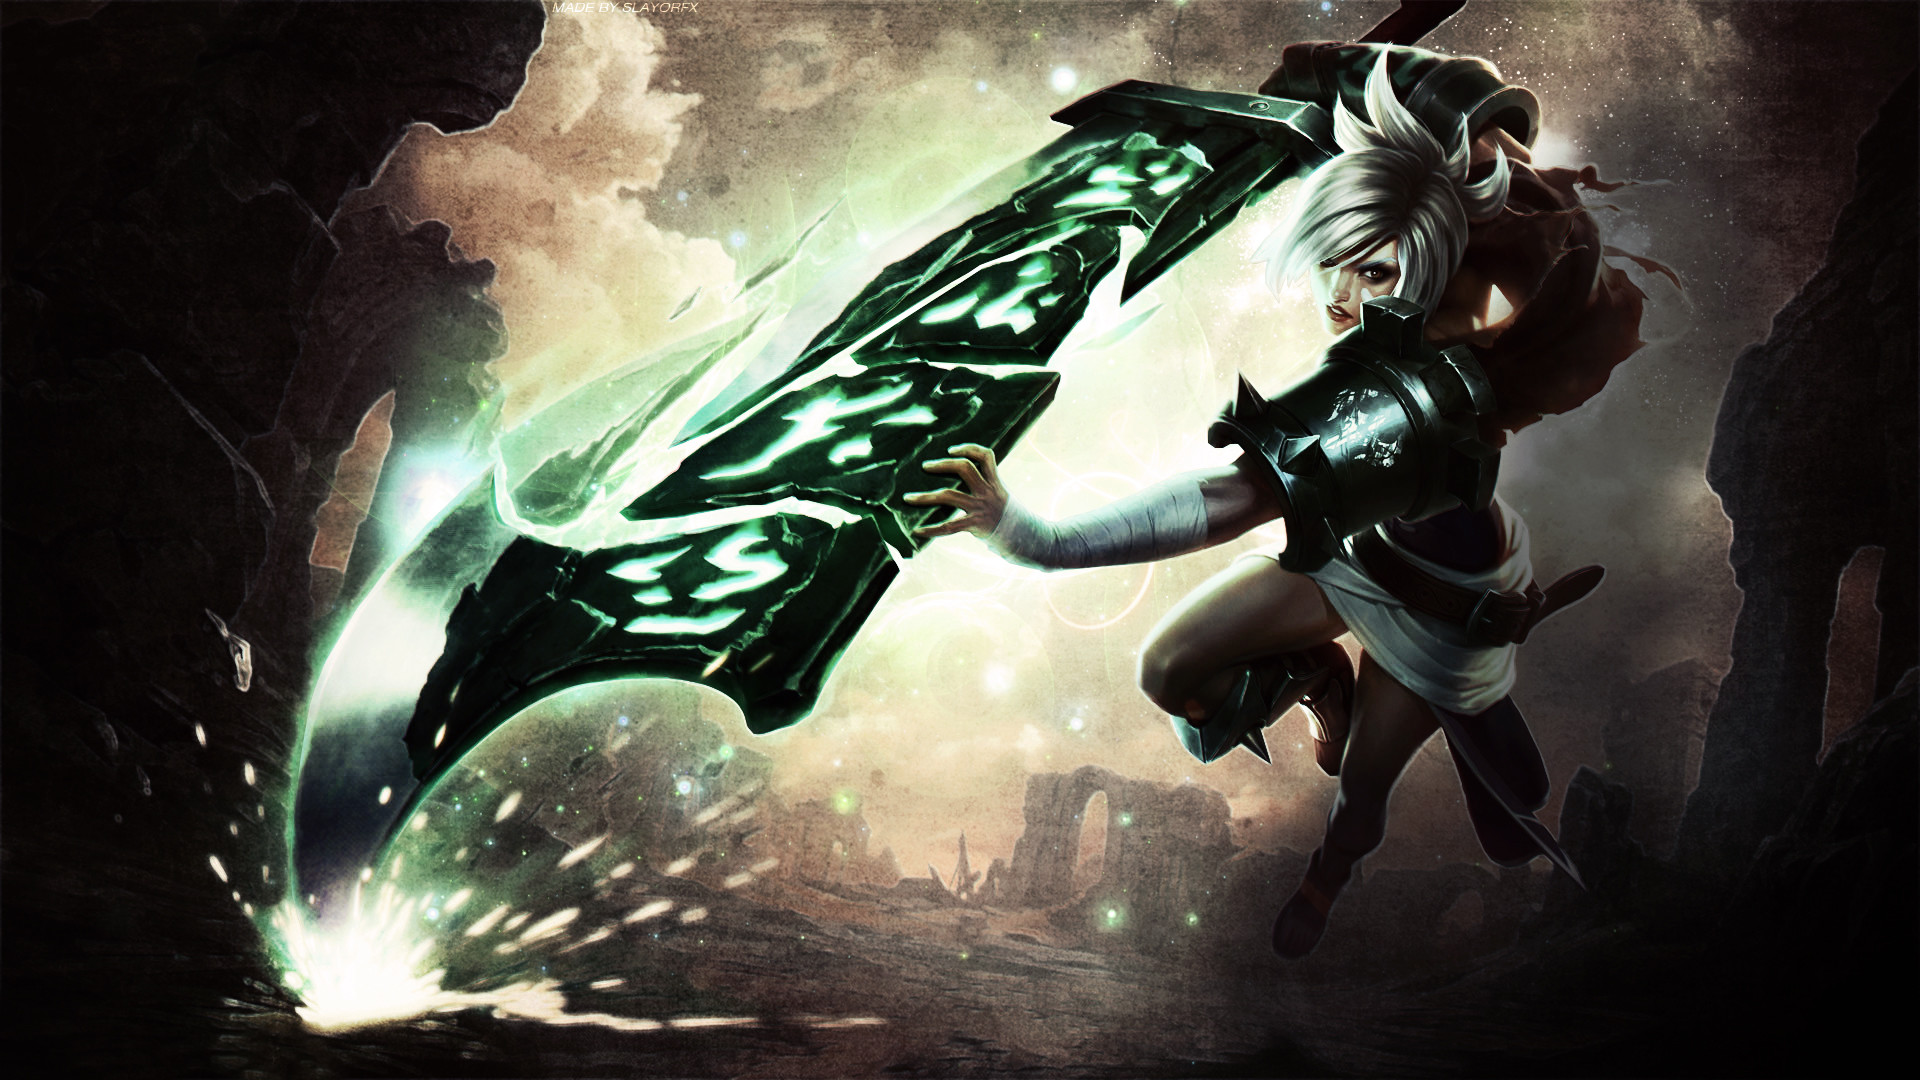 League Of Legends Battle Bunny Riven Source Championship Wallpaper 83 Images 1920x1080